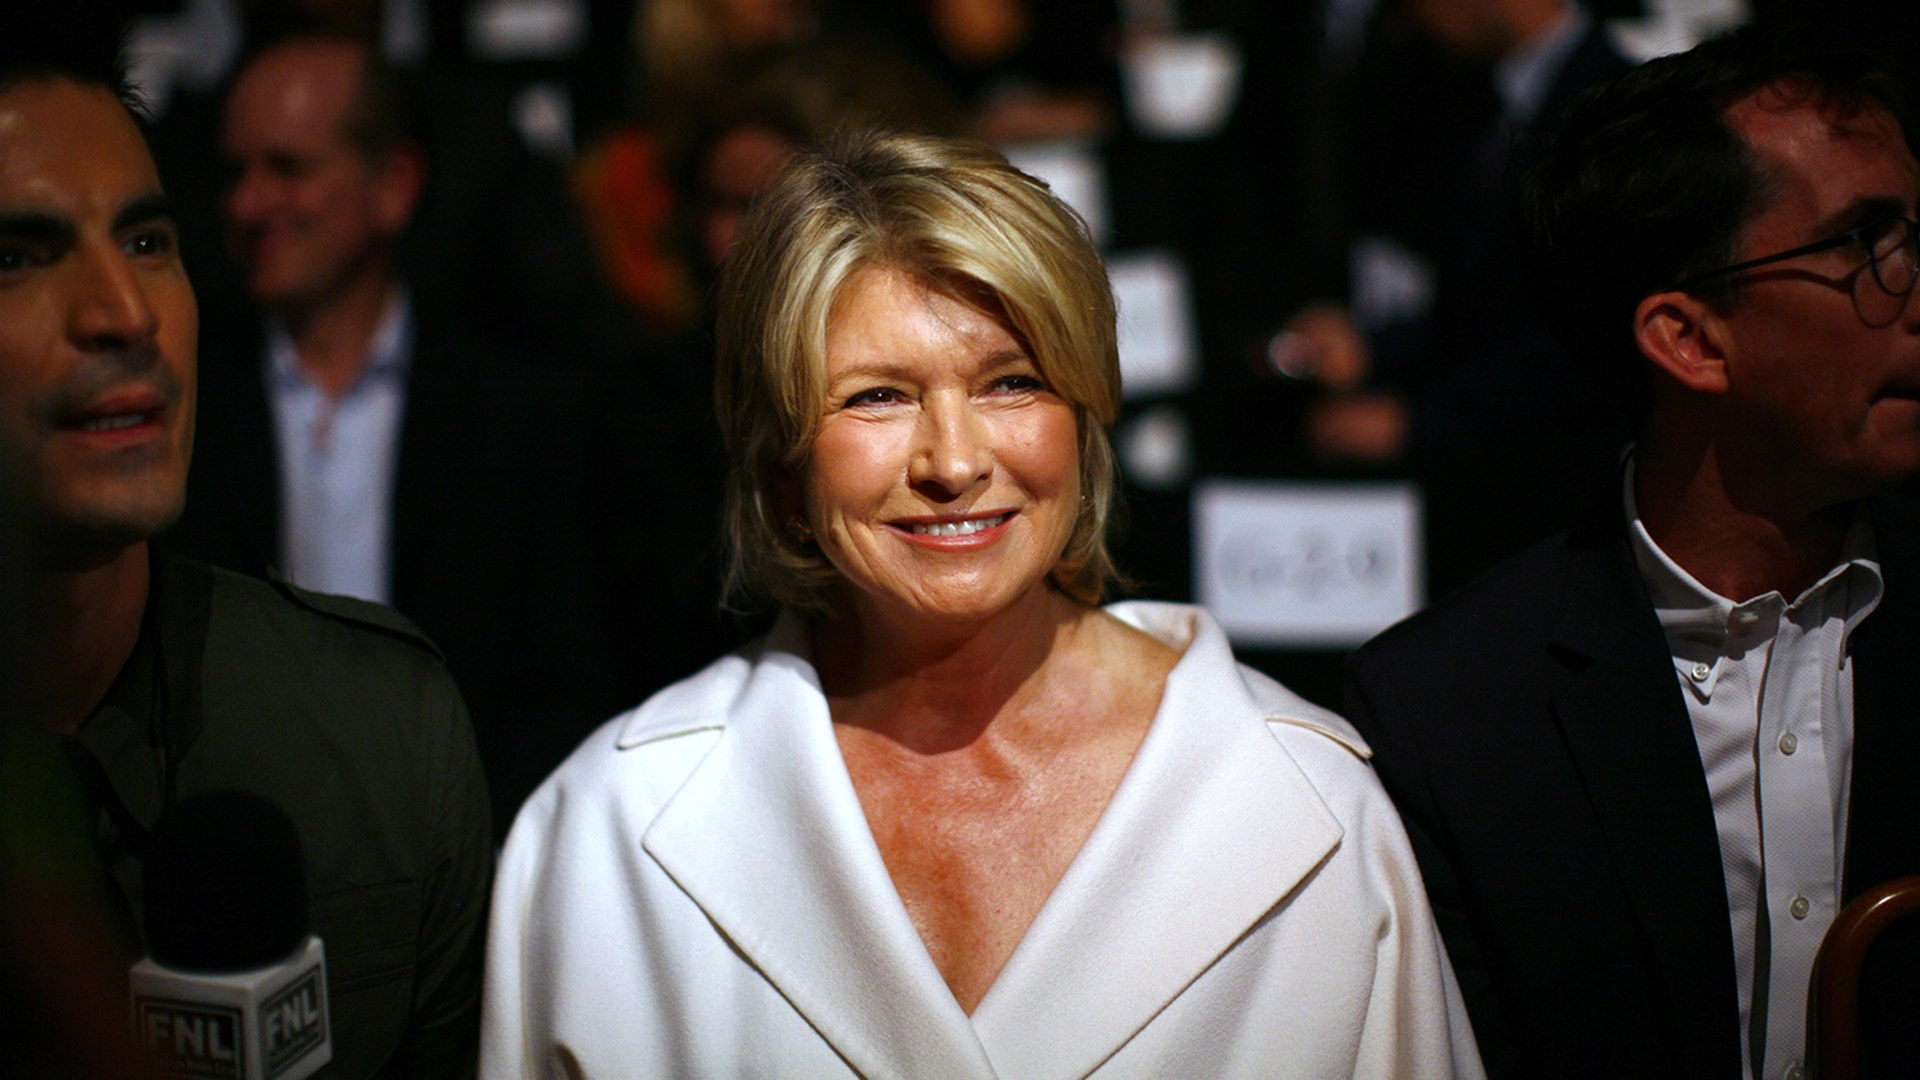 Image: Martha Stewart attends the Chado Ralph Rucci Spring 2010 collection during New York Fashion Week